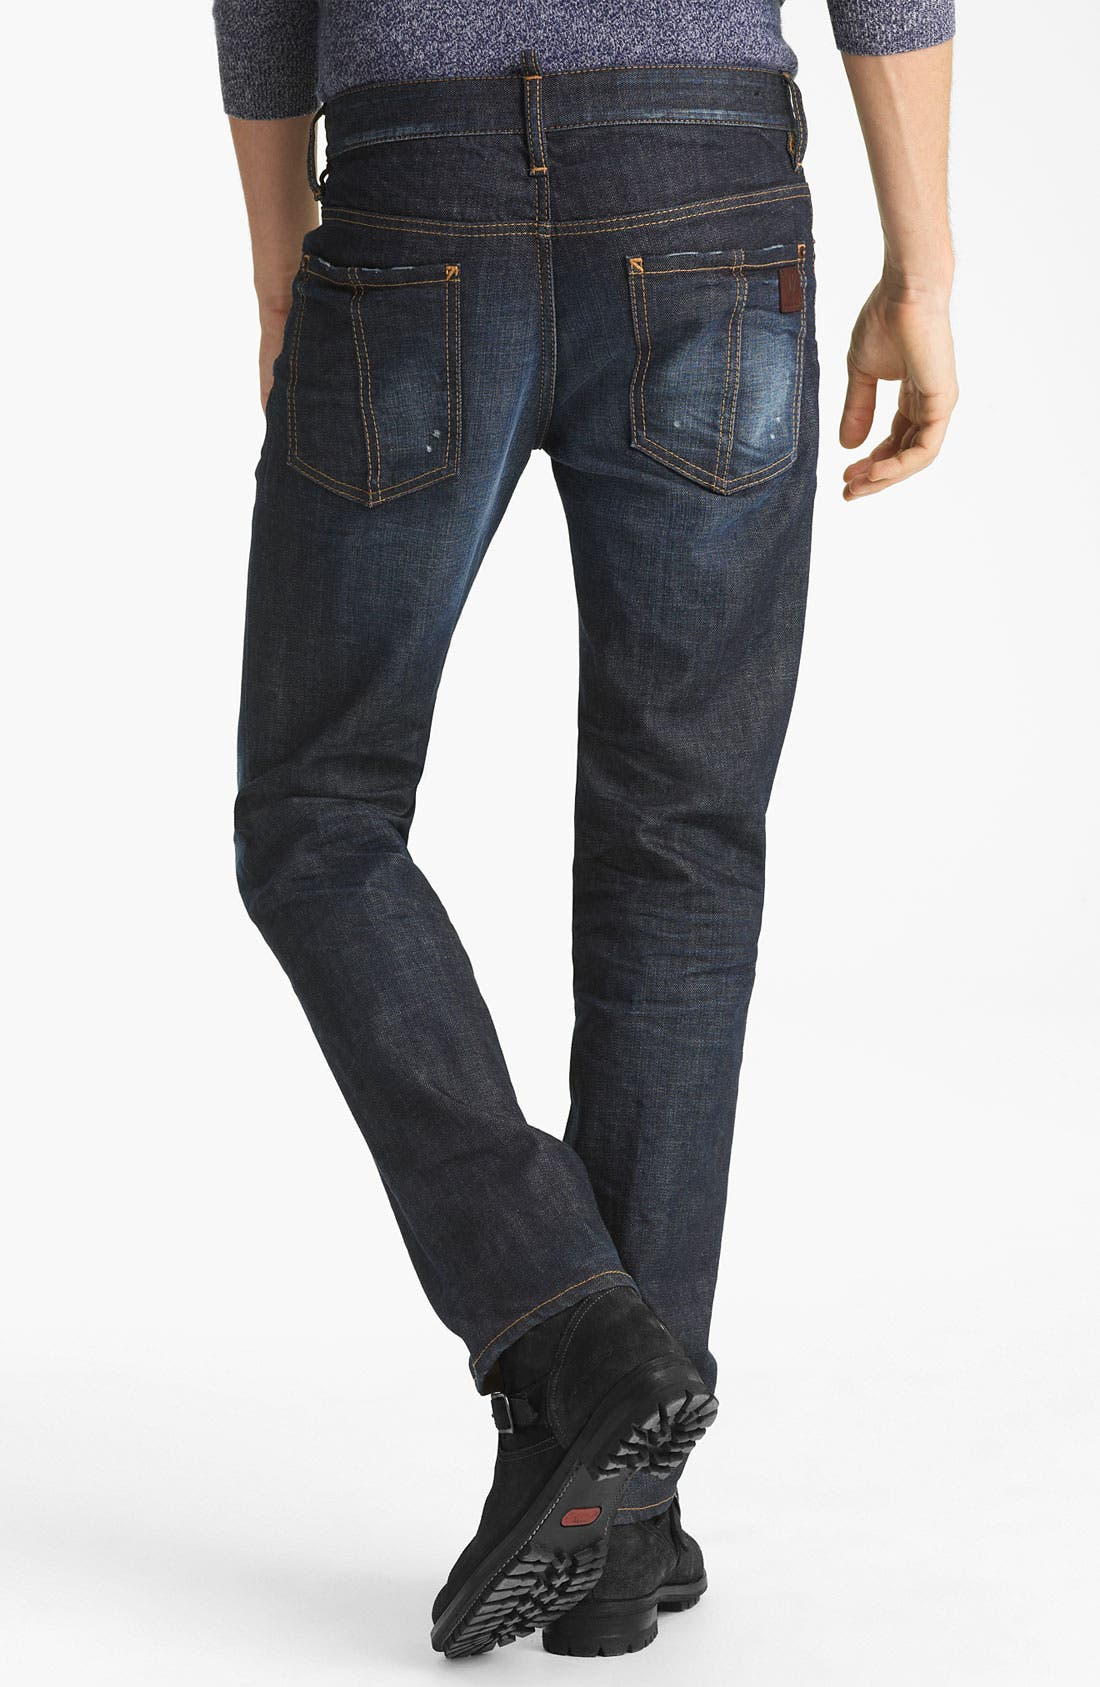 Alternate Image 1 Selected - Dsquared2 'Dean' Slim Fit Jeans (Everywhere)